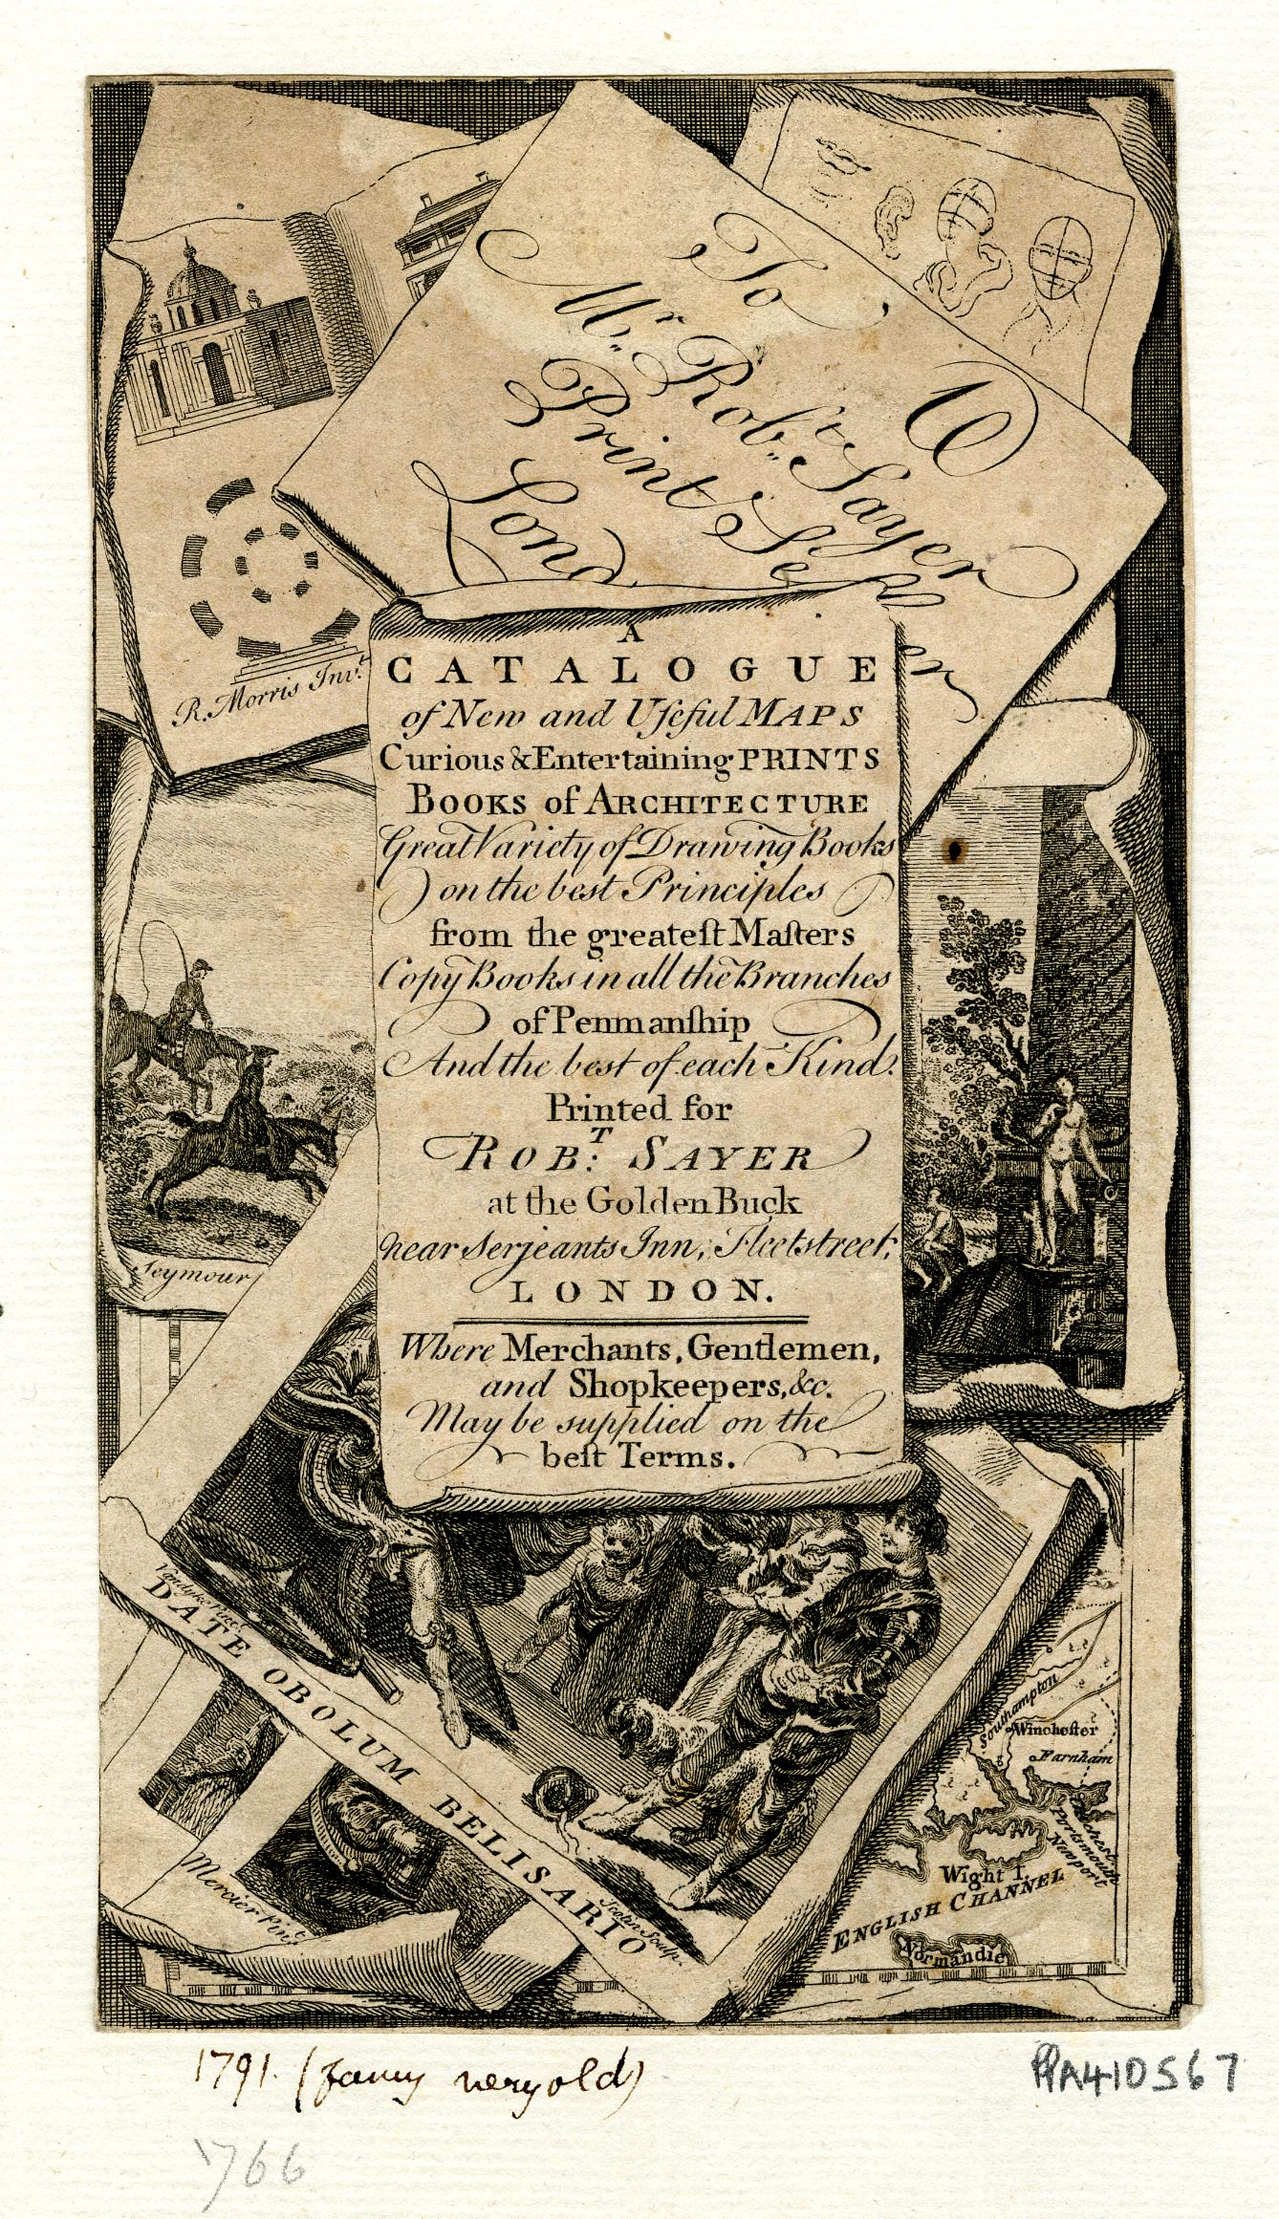 40 Robert Sayer Frontispiece for 'A Catalogue of News and Useful Maps Curious and Entertaining Prints c1766 BM